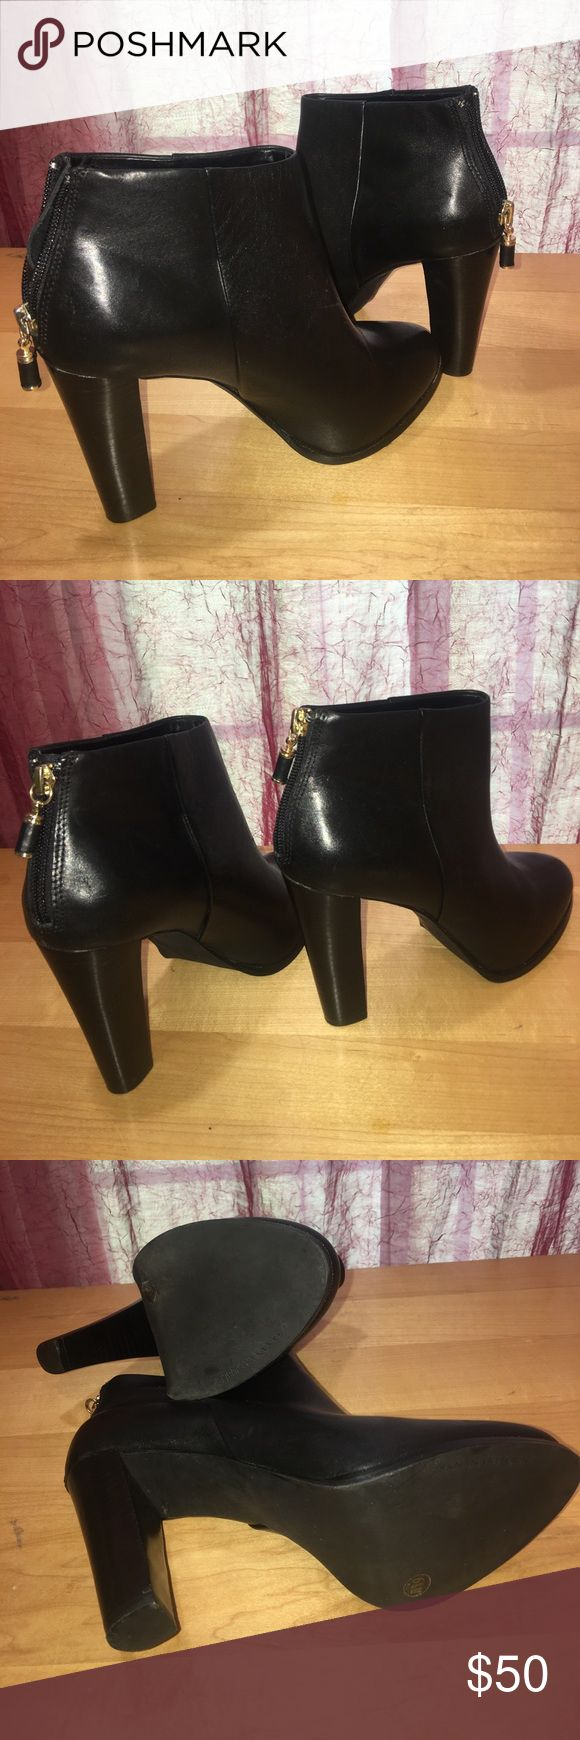 """ankle boots by banana republic""""SIERRA"""" Beautiful black leather ankle boots by banana republic""""SIERRA"""" Size 6.5 Banana Republic Shoes Ankle Boots & Booties"""